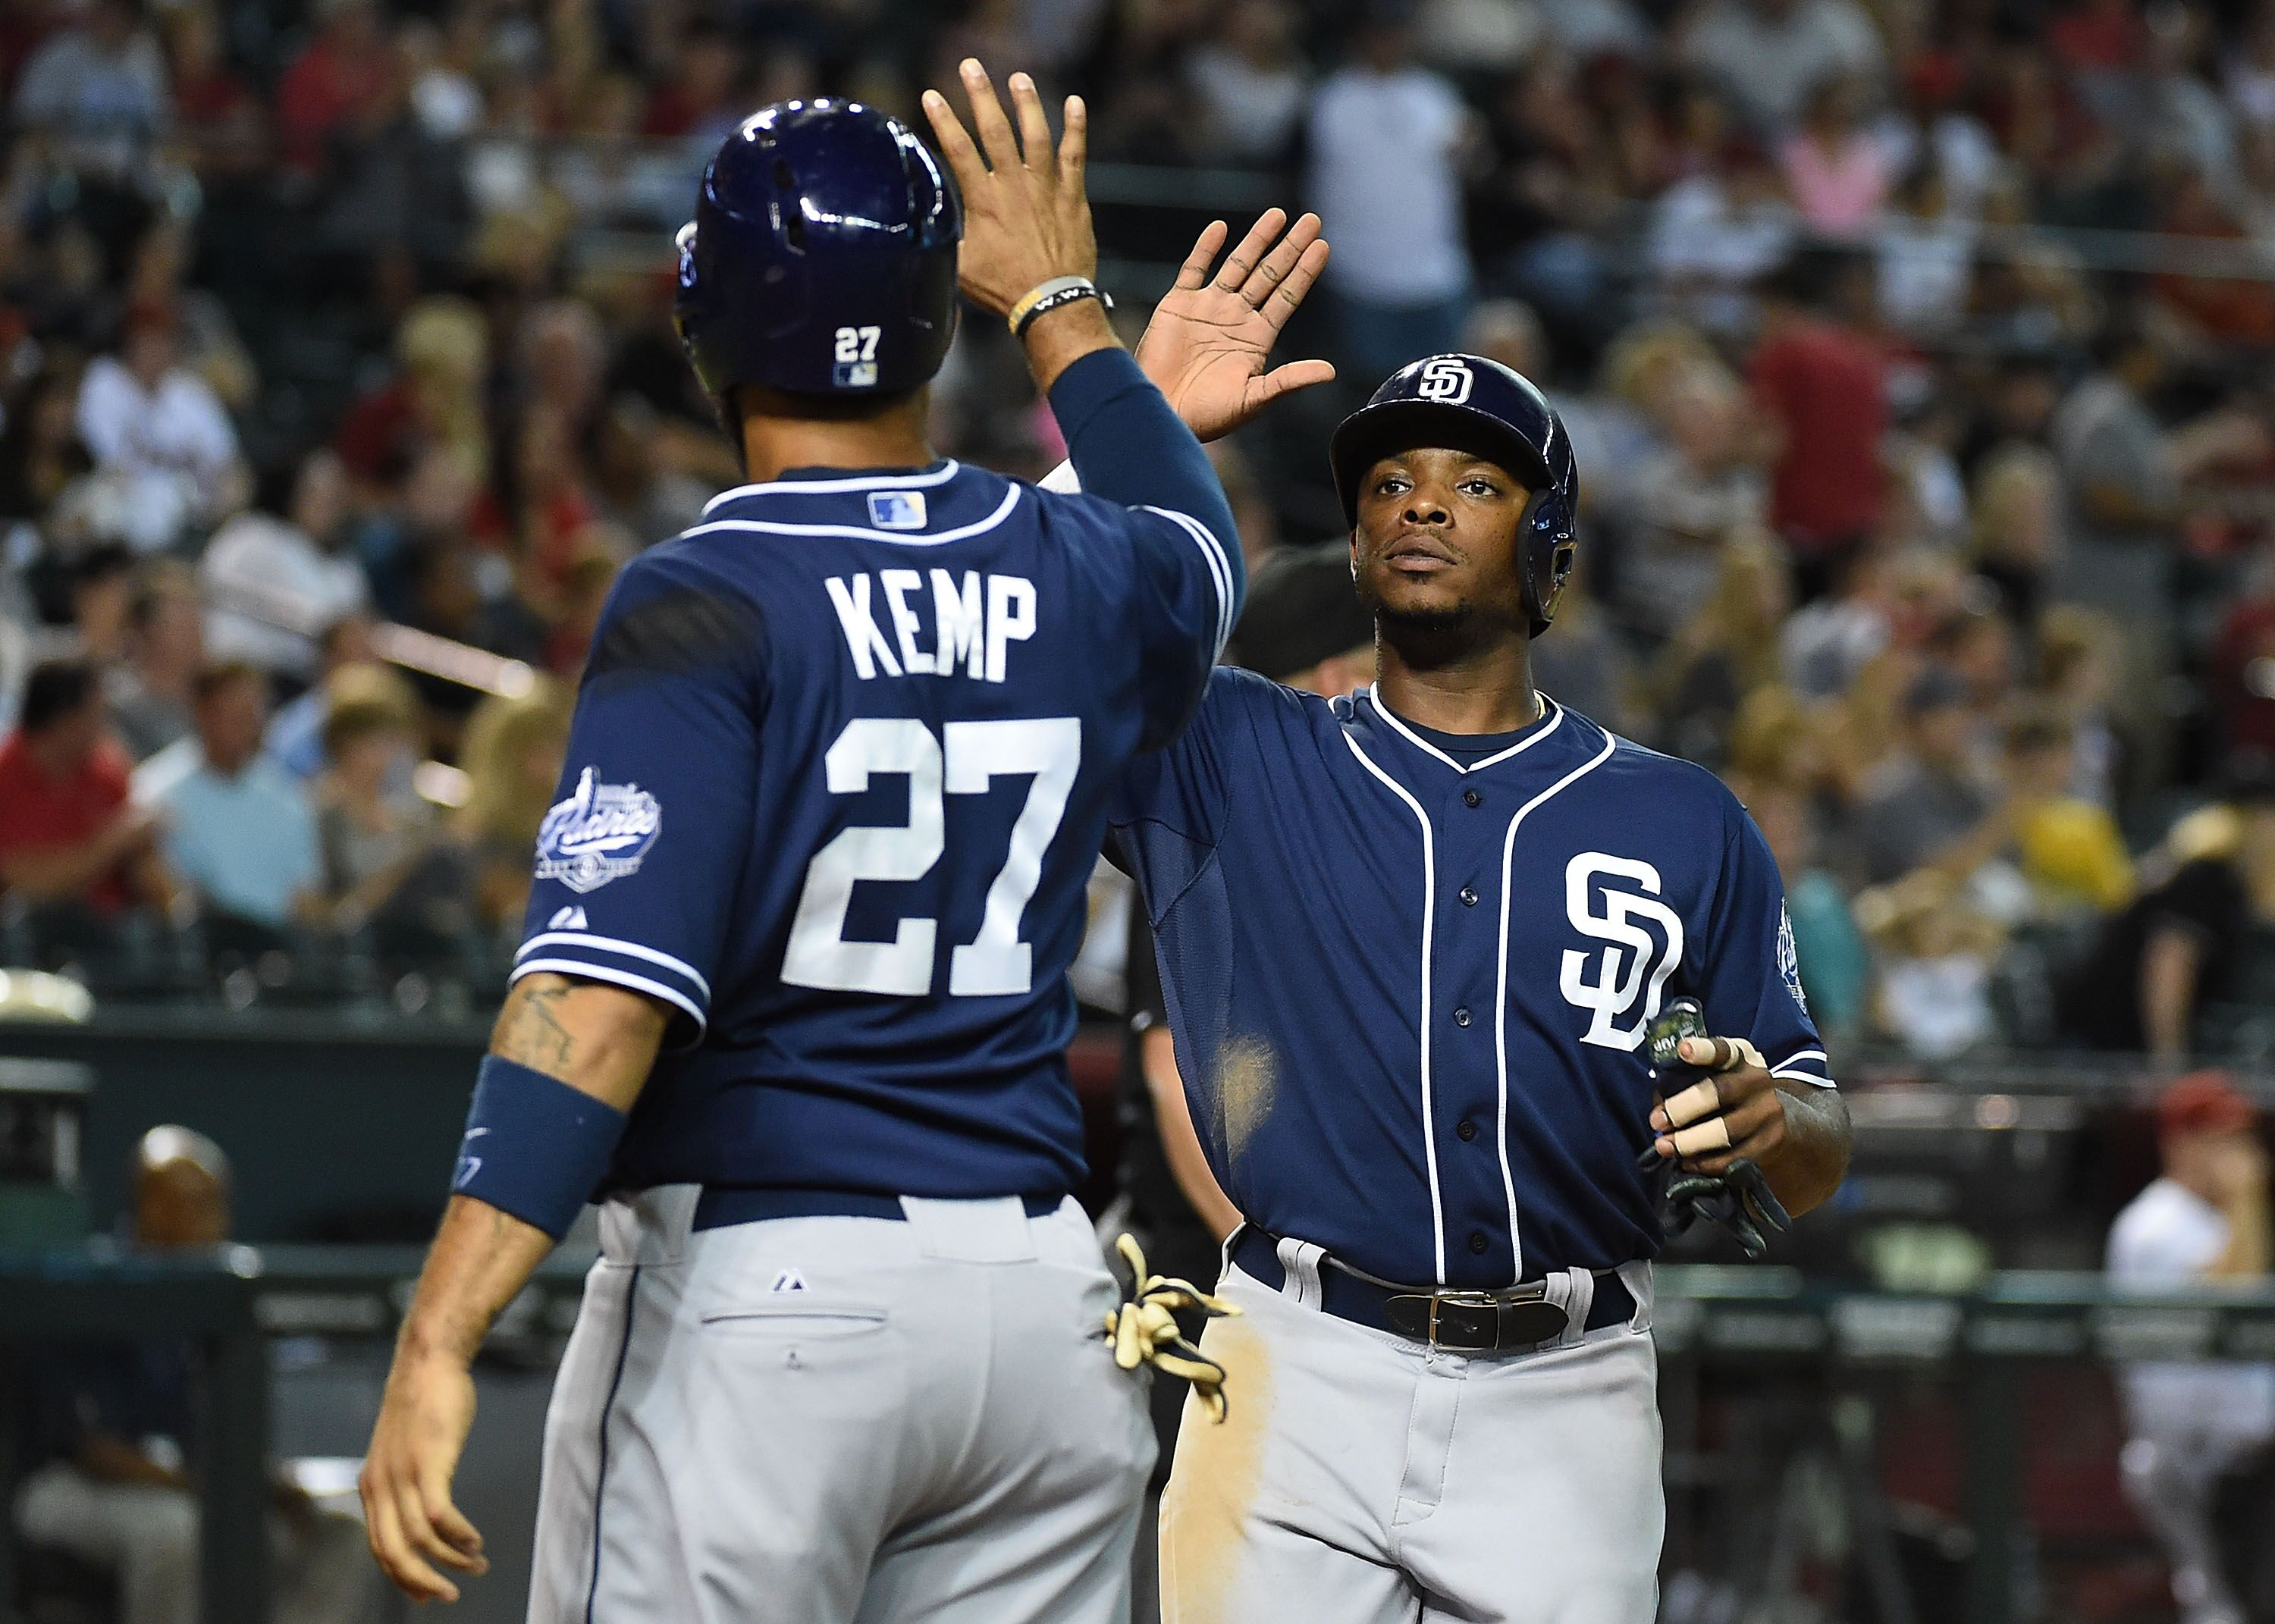 488256958-san-diego-padres-v-arizona-diamondbacks.jpg